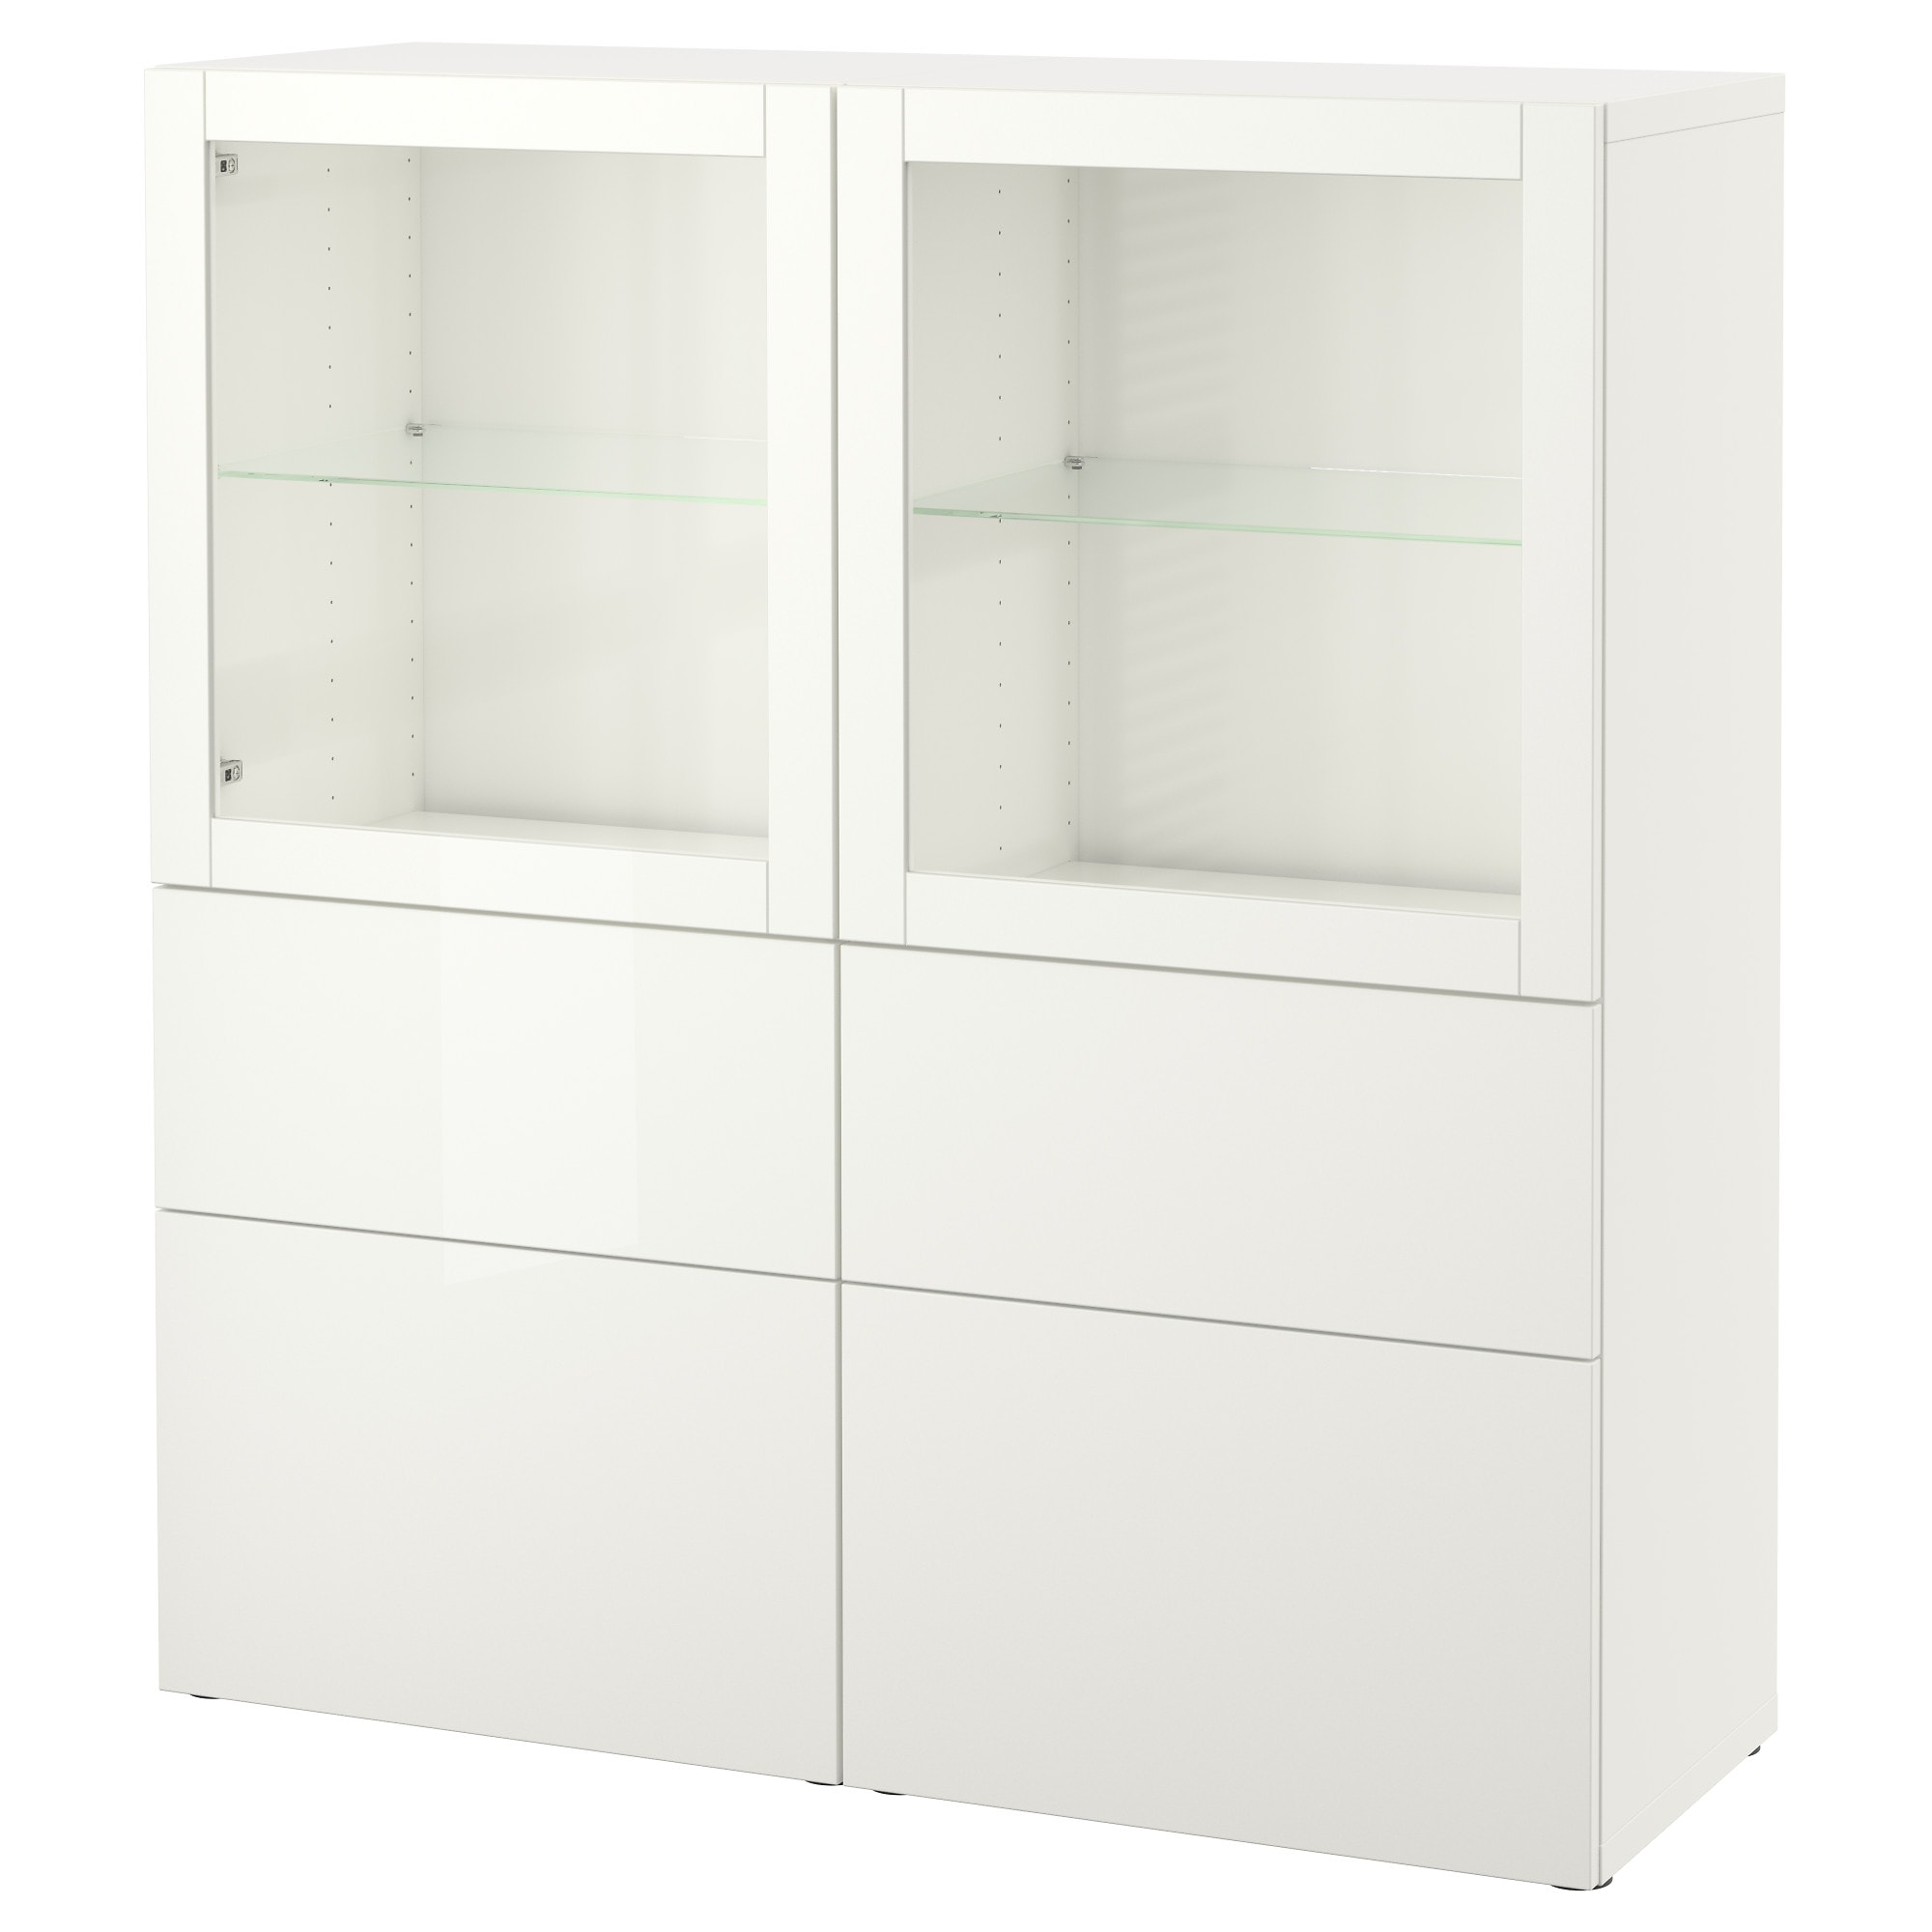 Combinations Besta System Ikea